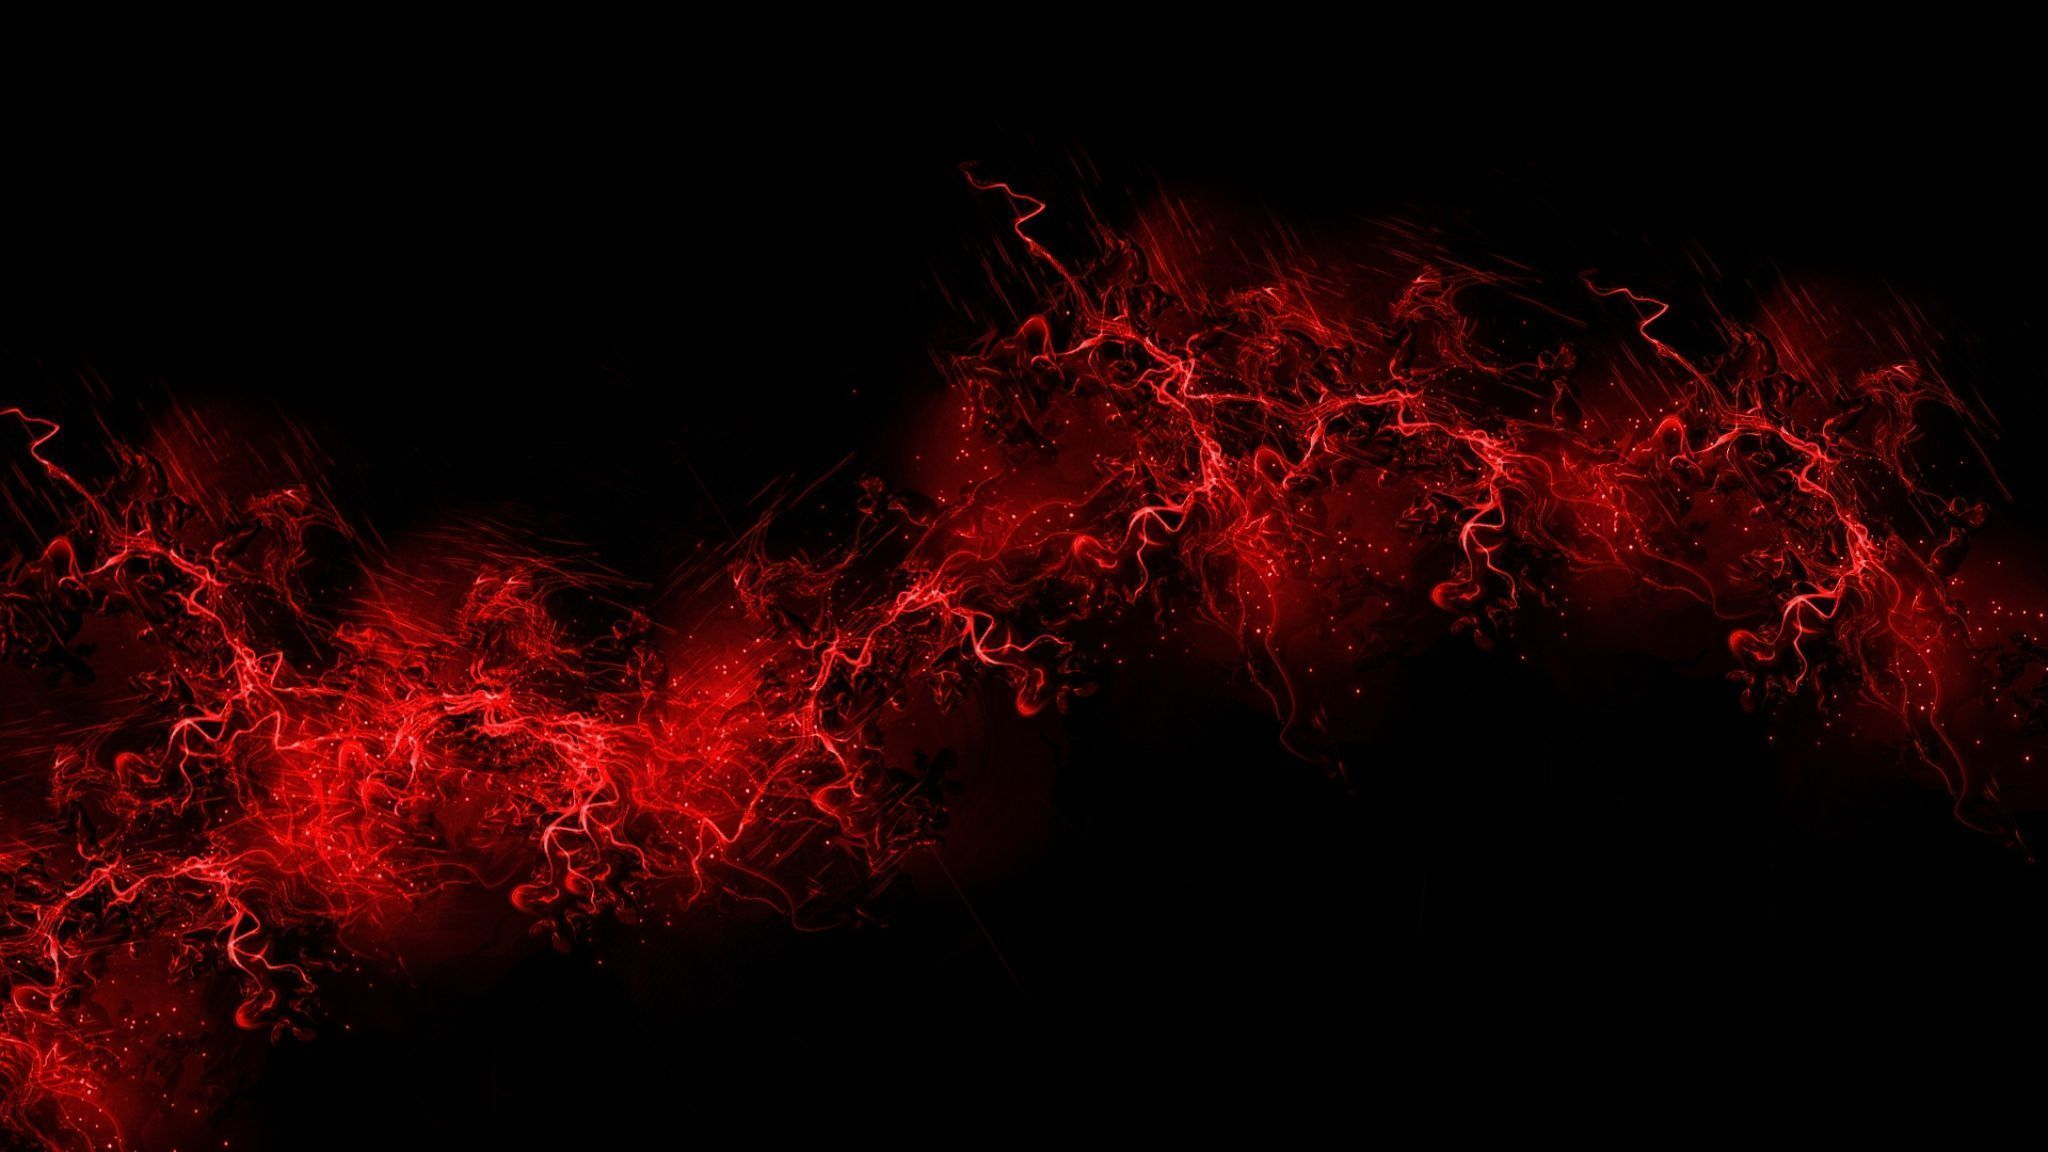 20 X 20 Red Wallpapers   Top Free 20 X 20 Red Backgrounds ...